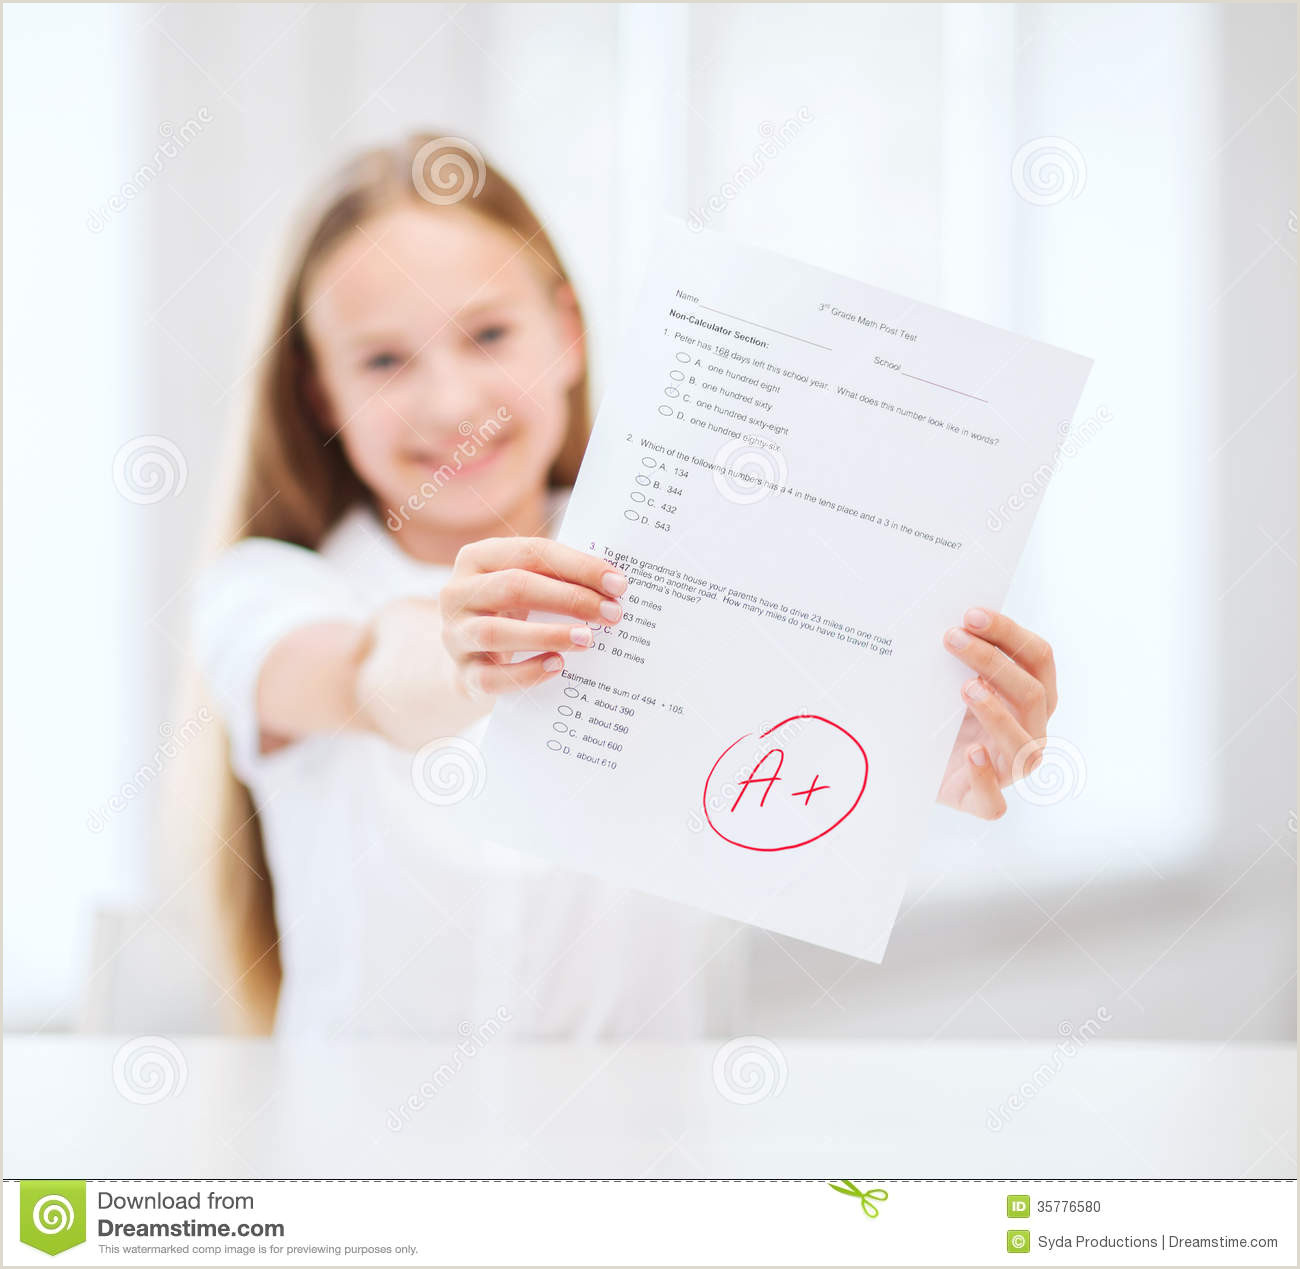 Unique Girly Business Cards With No Eriting 15 848 Child Grade Student S Free & Royalty Free